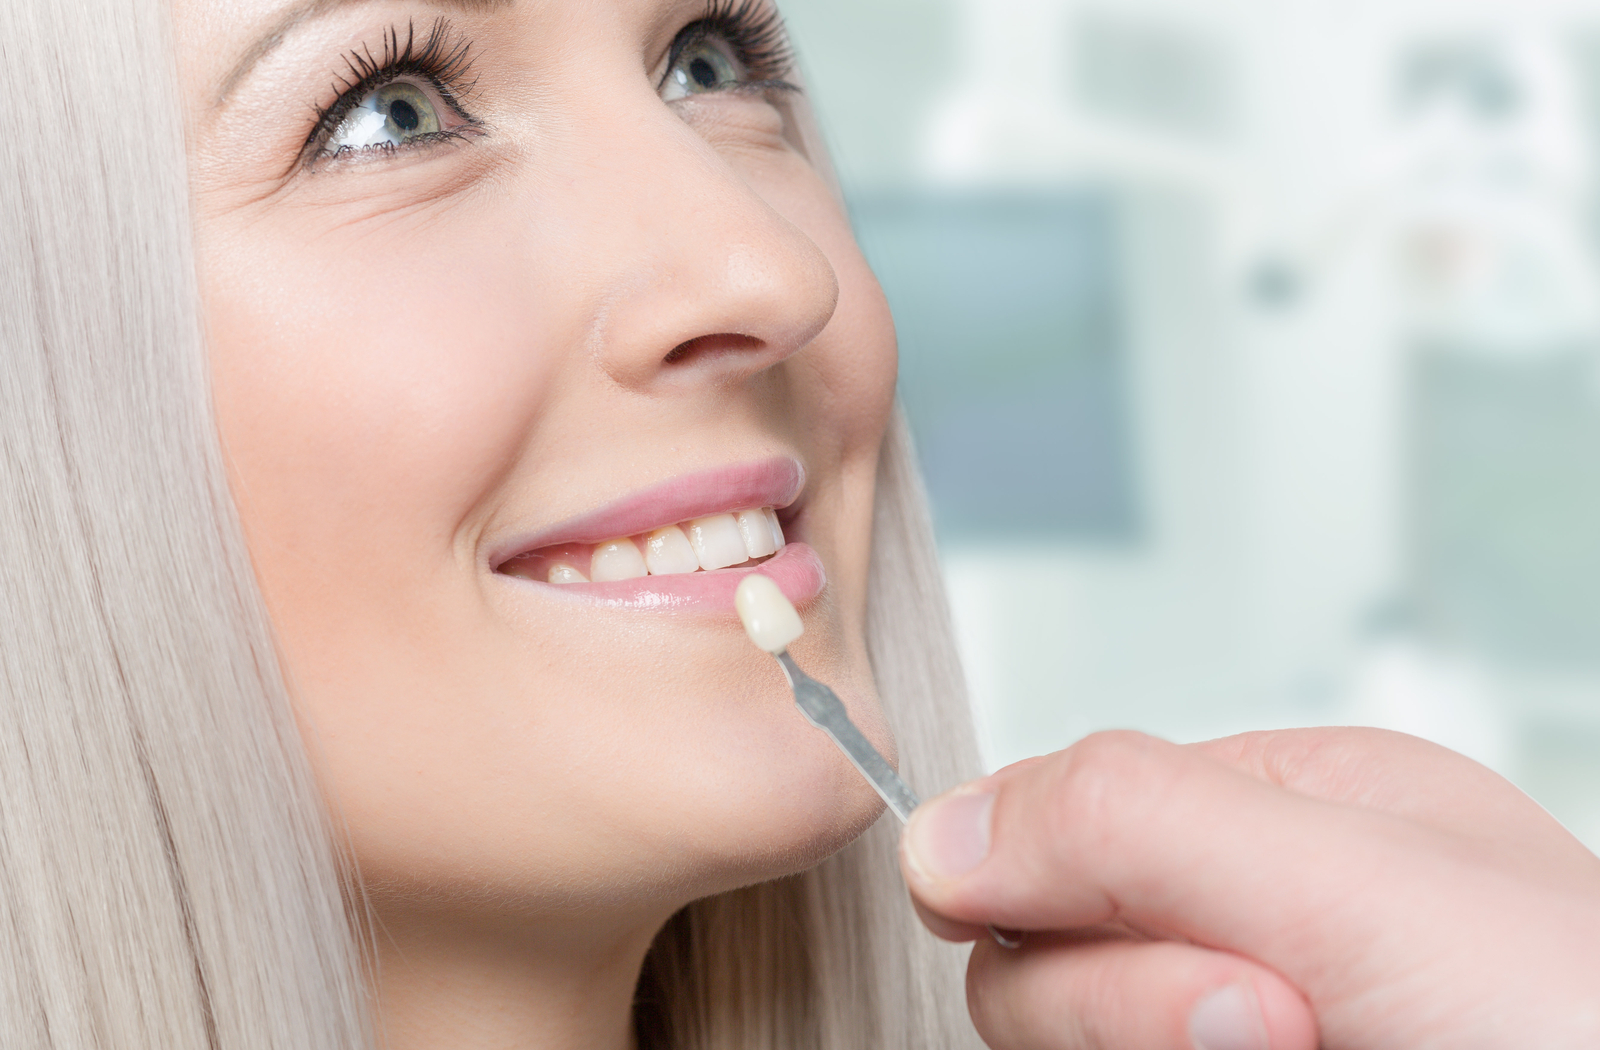 blonde woman smiling while the dentist checks if the veneers are the right colour